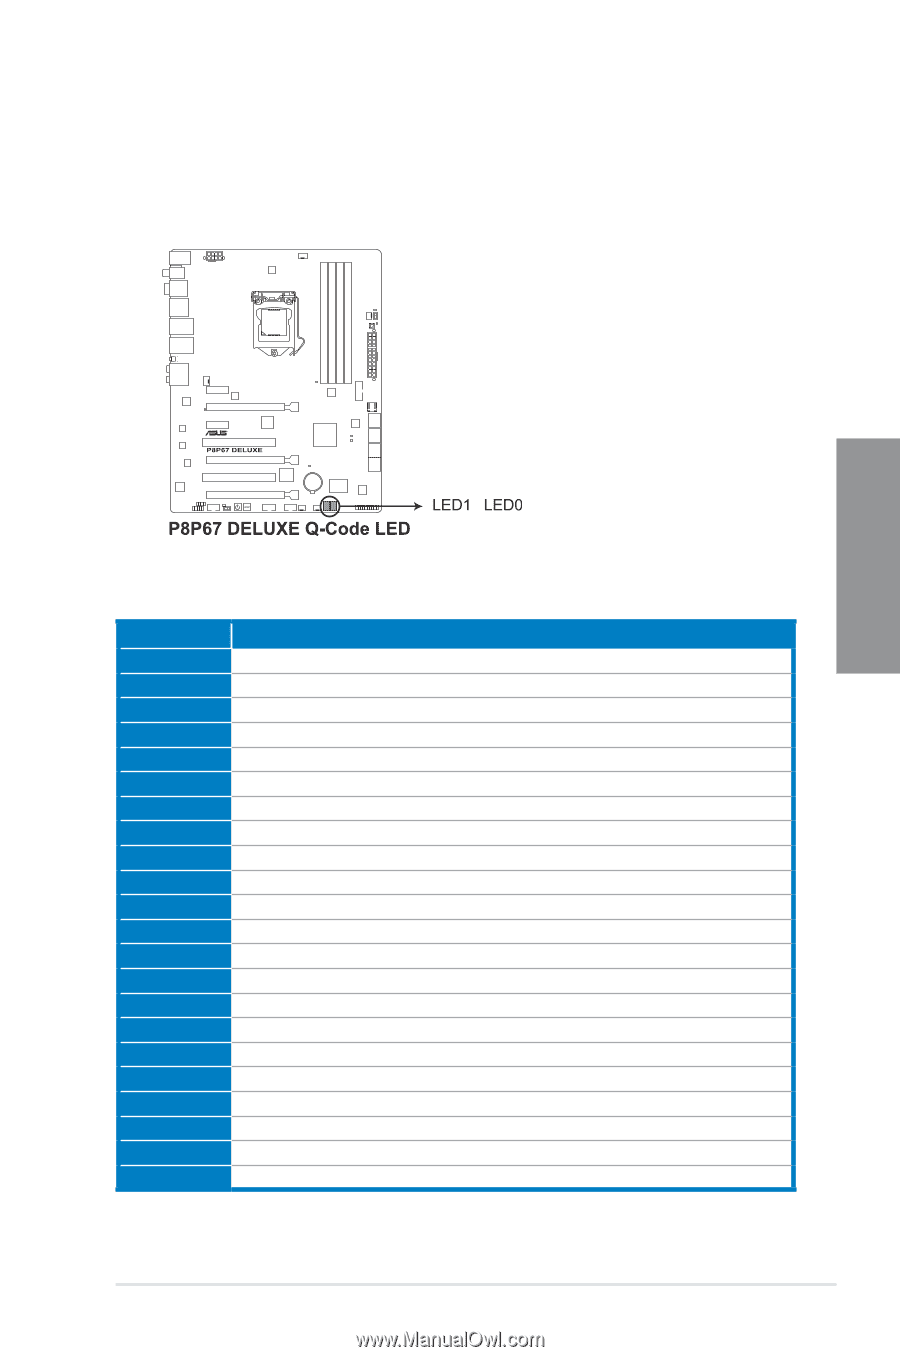 Asus P8P67 DELUXE | User Manual - Page 39